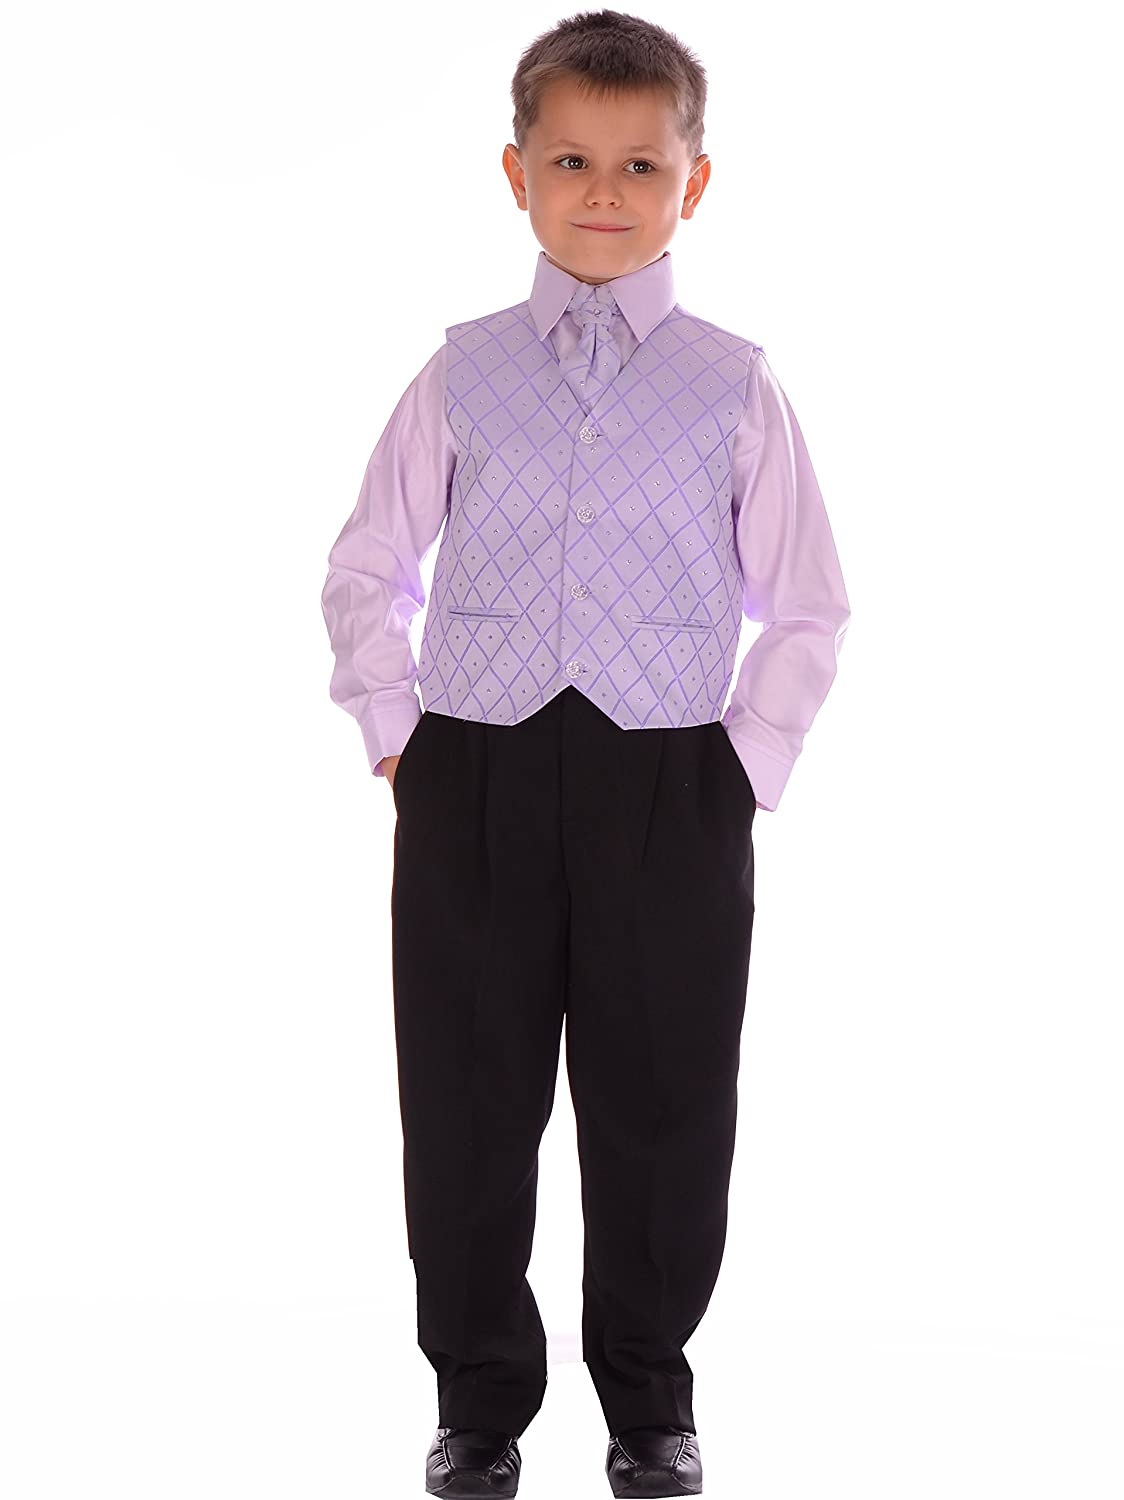 Boys Suit Formal Pageboy Wedding Suits 4 piece Black and Lilac 0-3months to 14-15 years